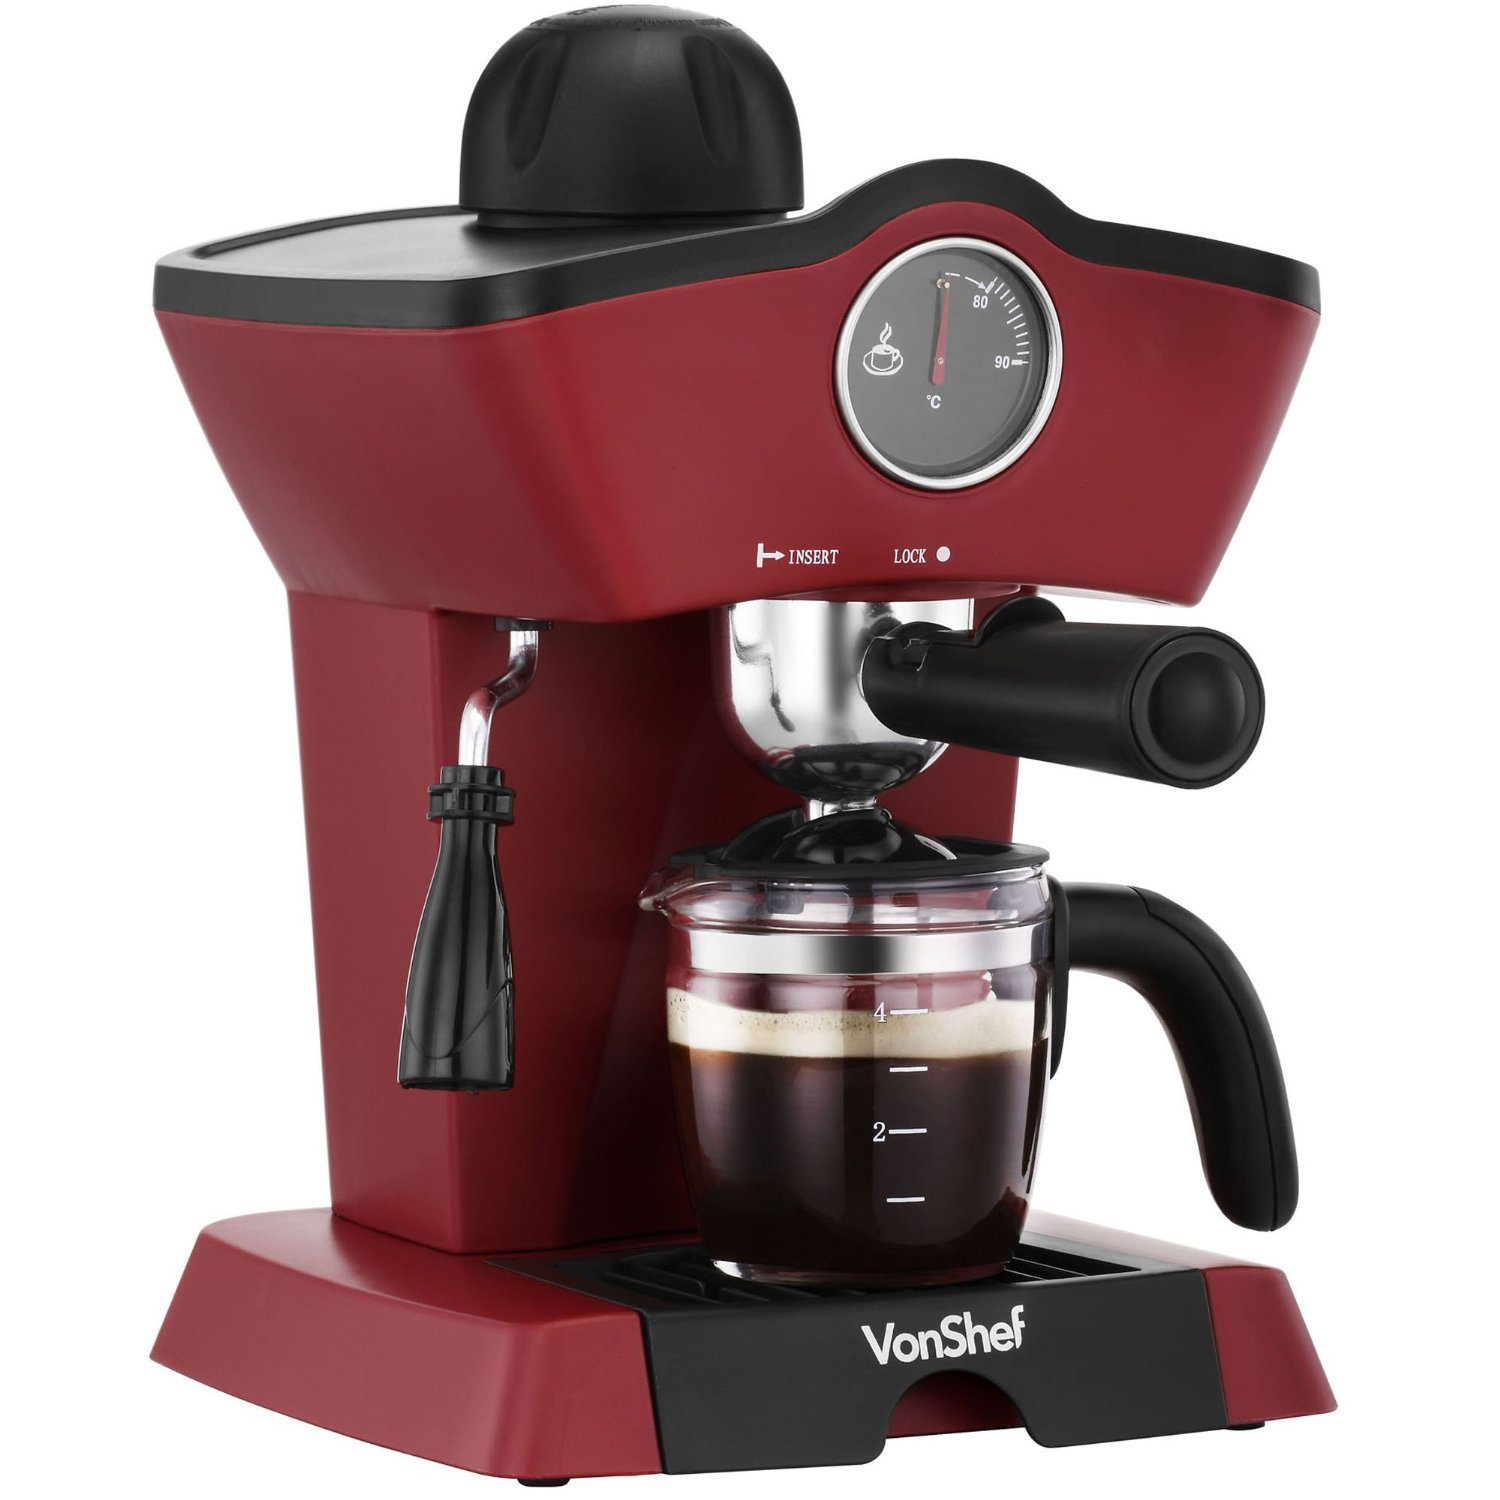 vonshef 4 bar espresso coffee maker machine review the perfect grind. Black Bedroom Furniture Sets. Home Design Ideas